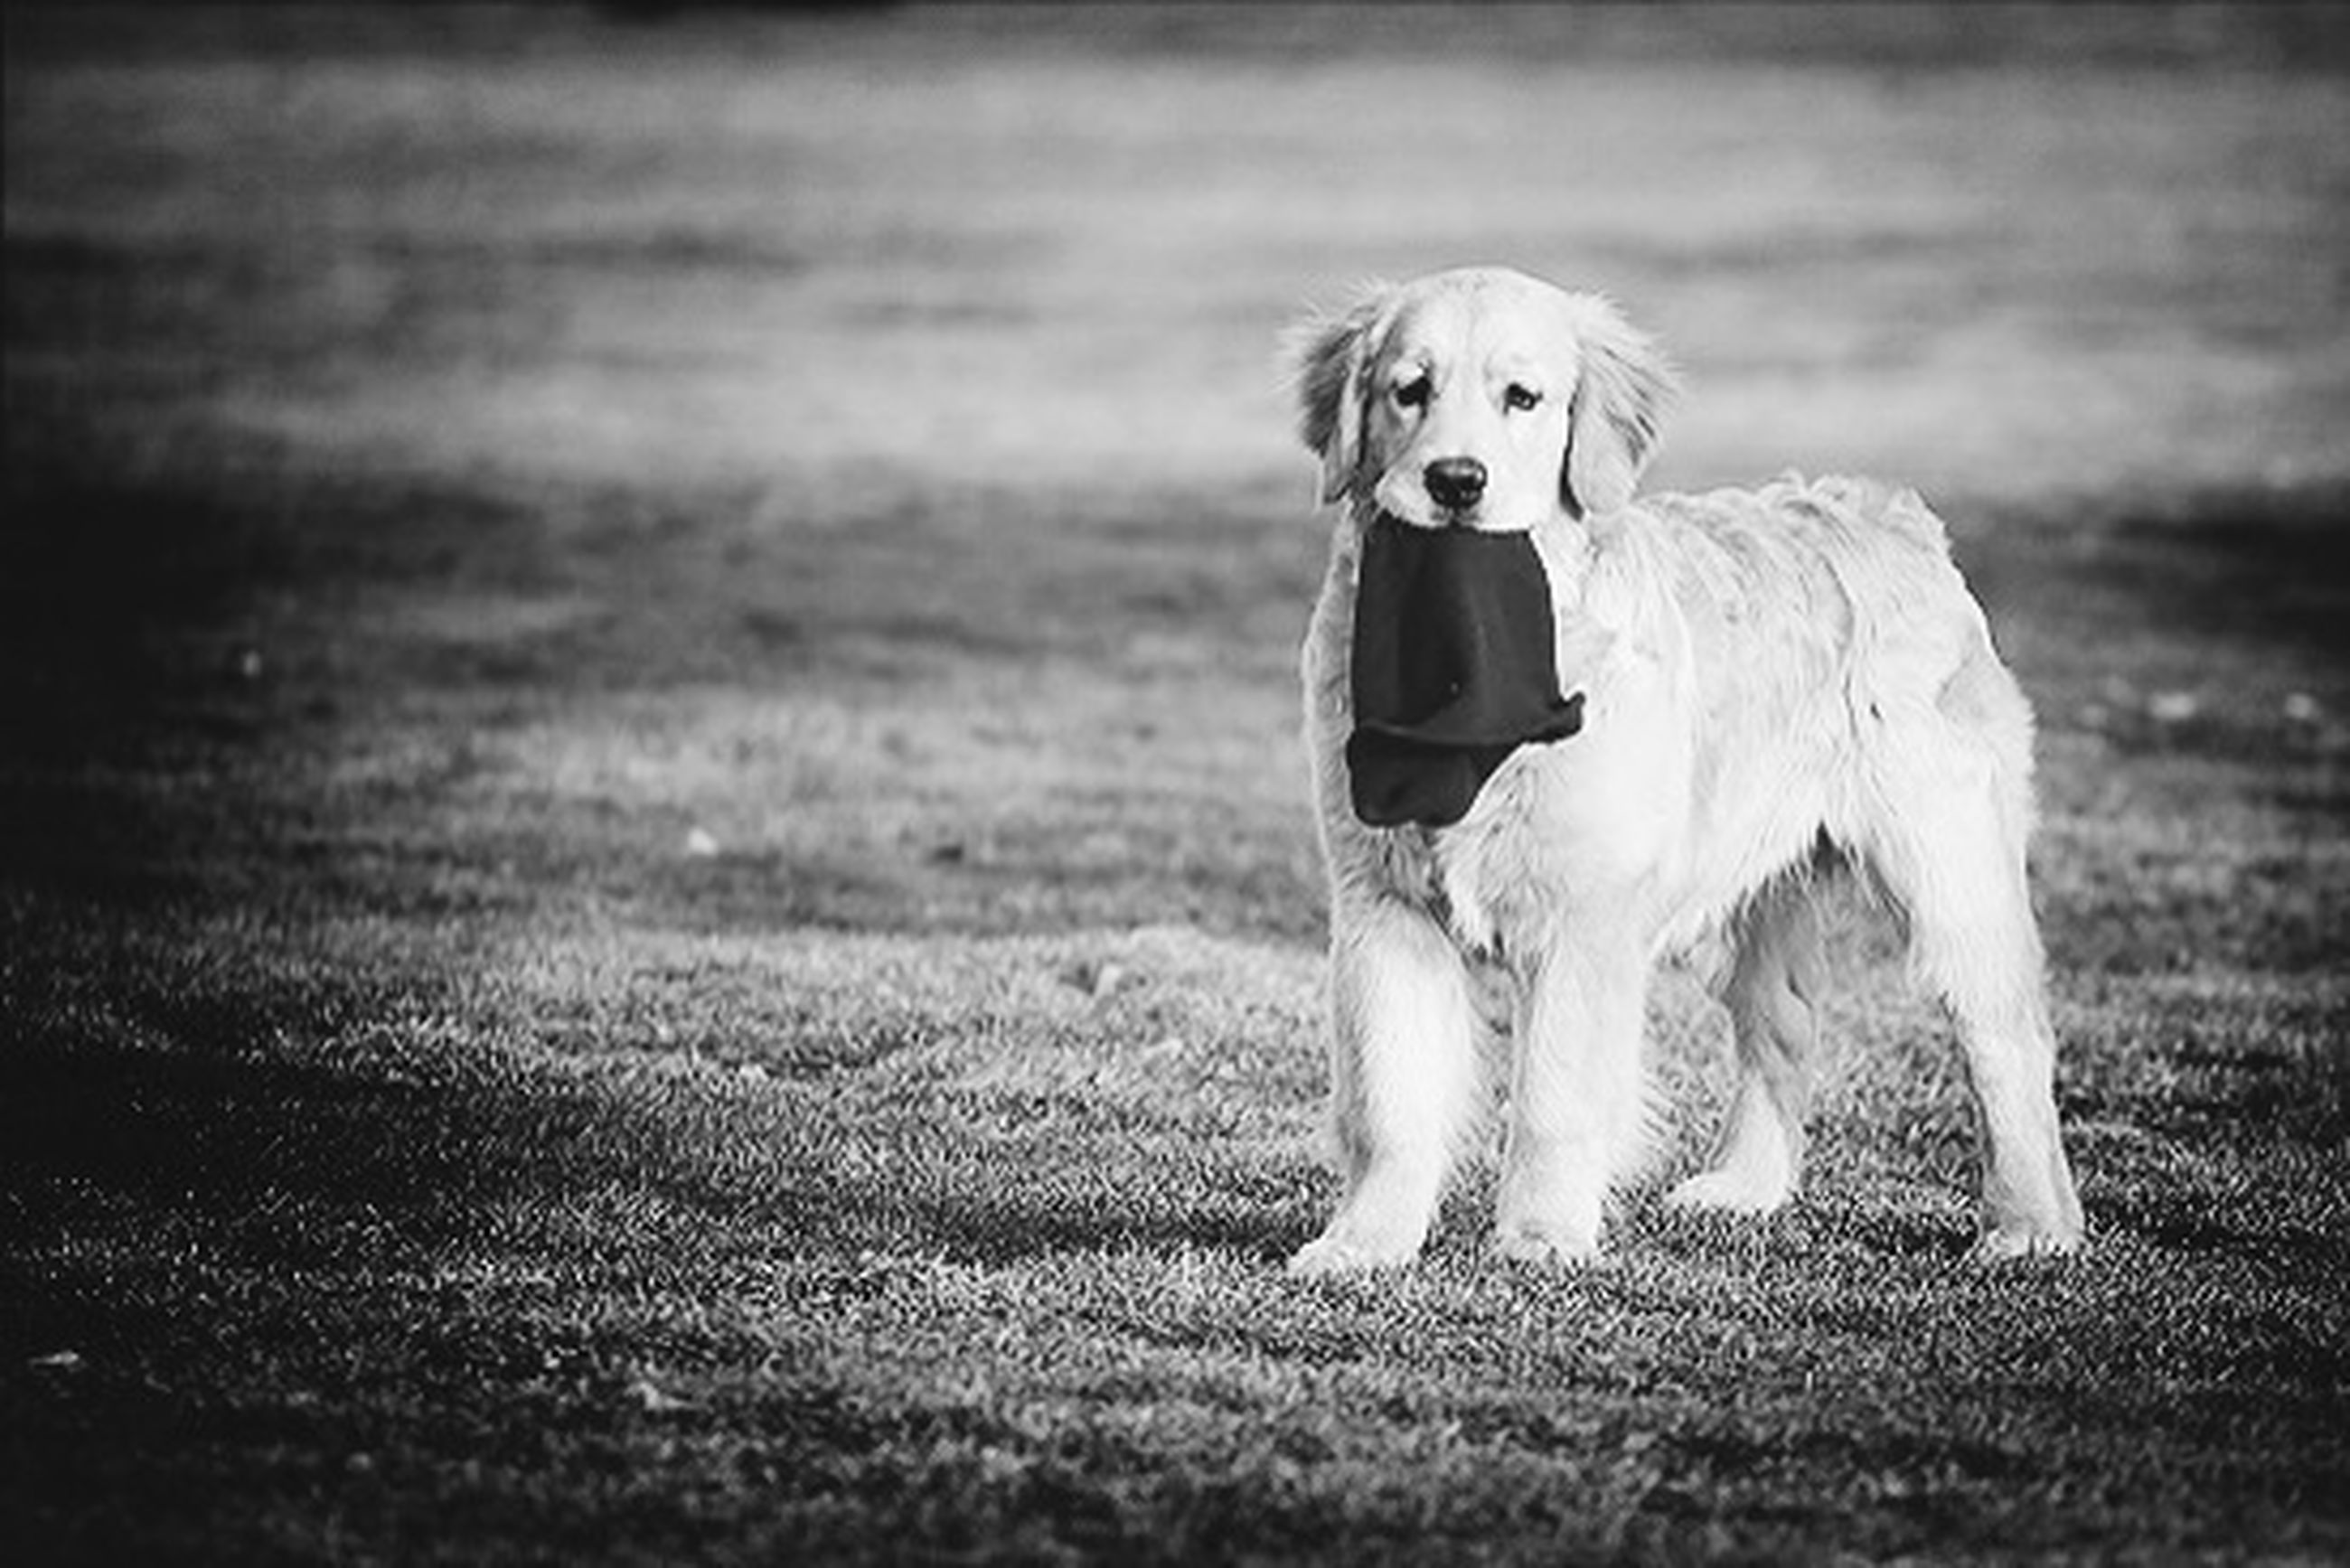 grass, domestic animals, animal themes, dog, pets, mammal, field, one animal, grassy, full length, standing, portrait, nature, focus on foreground, outdoors, front view, day, looking at camera, running, sitting